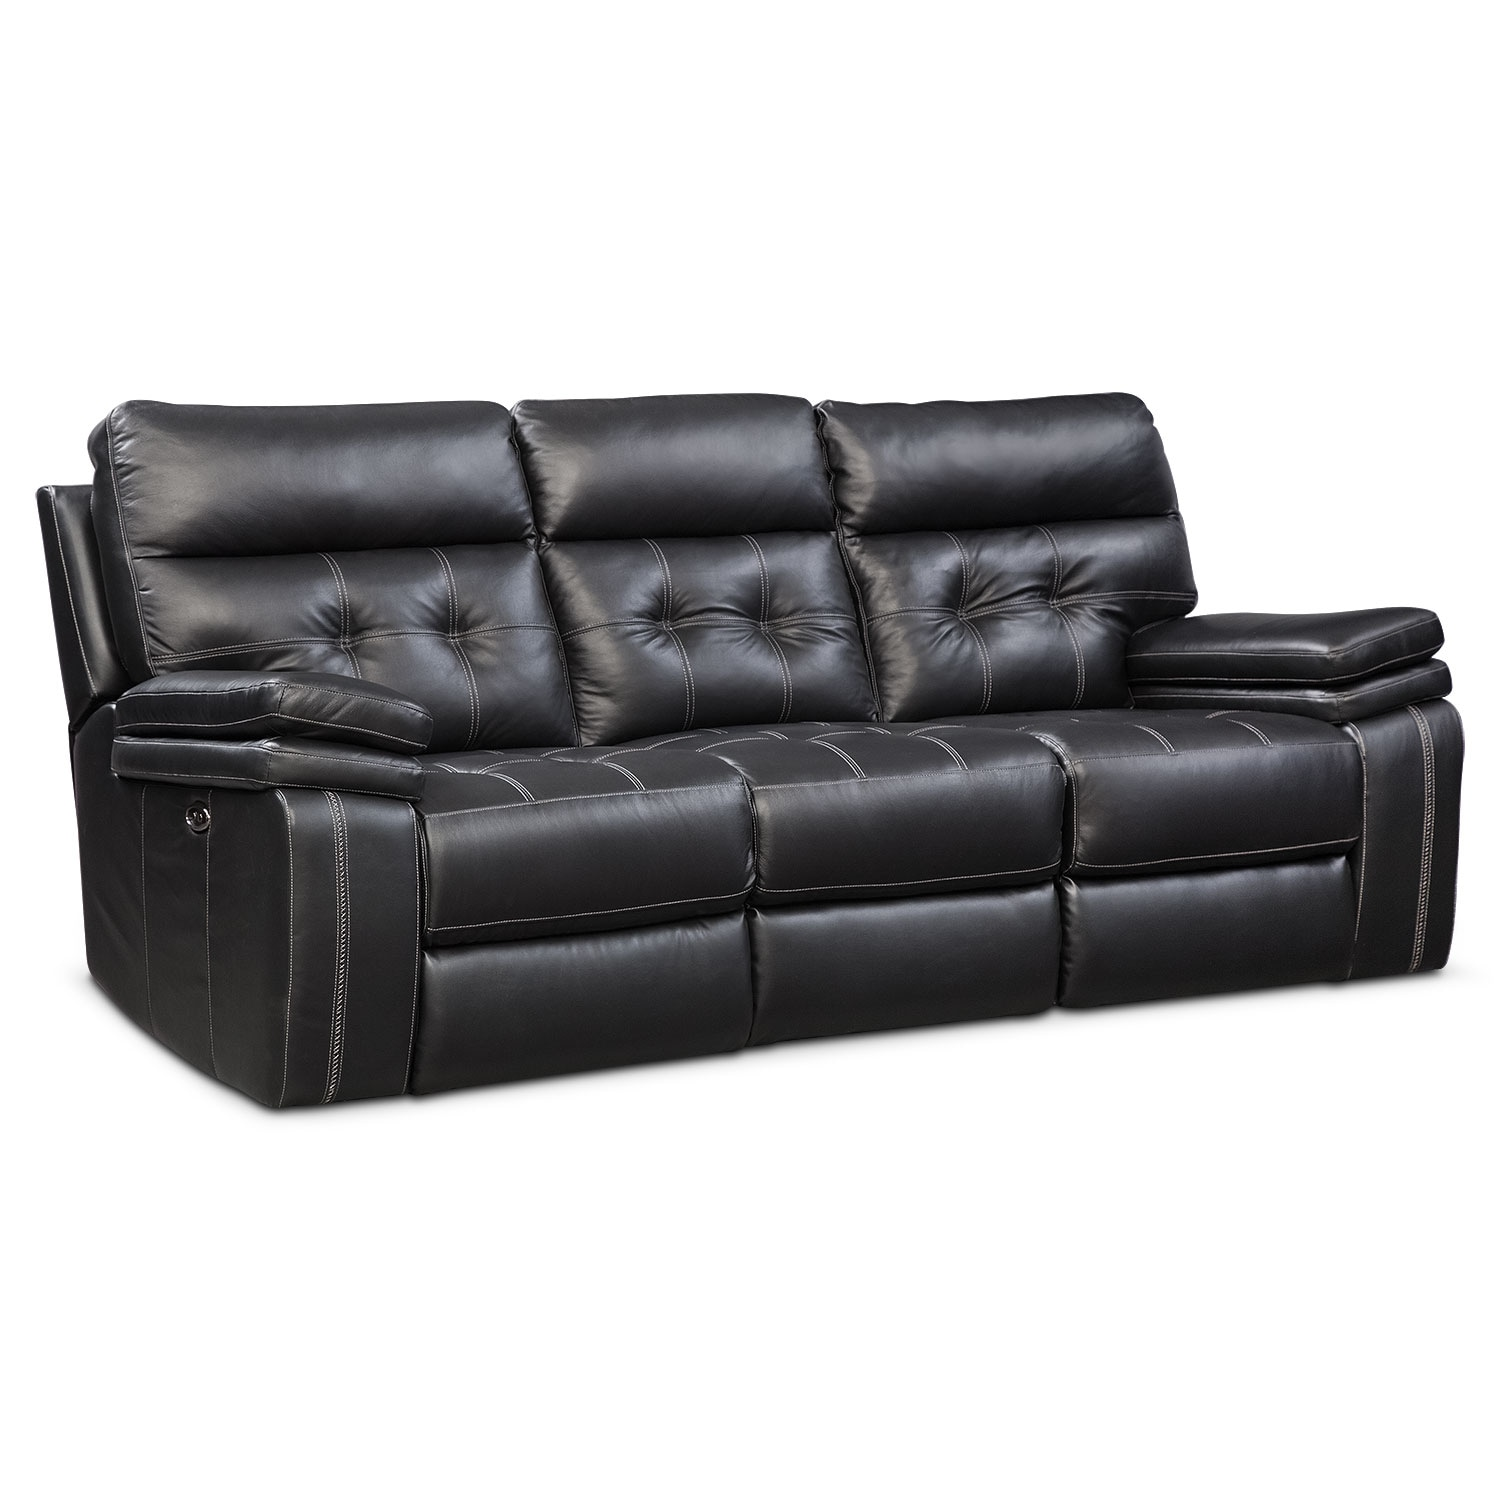 brisco power reclining sofa black - Black Leather Loveseat